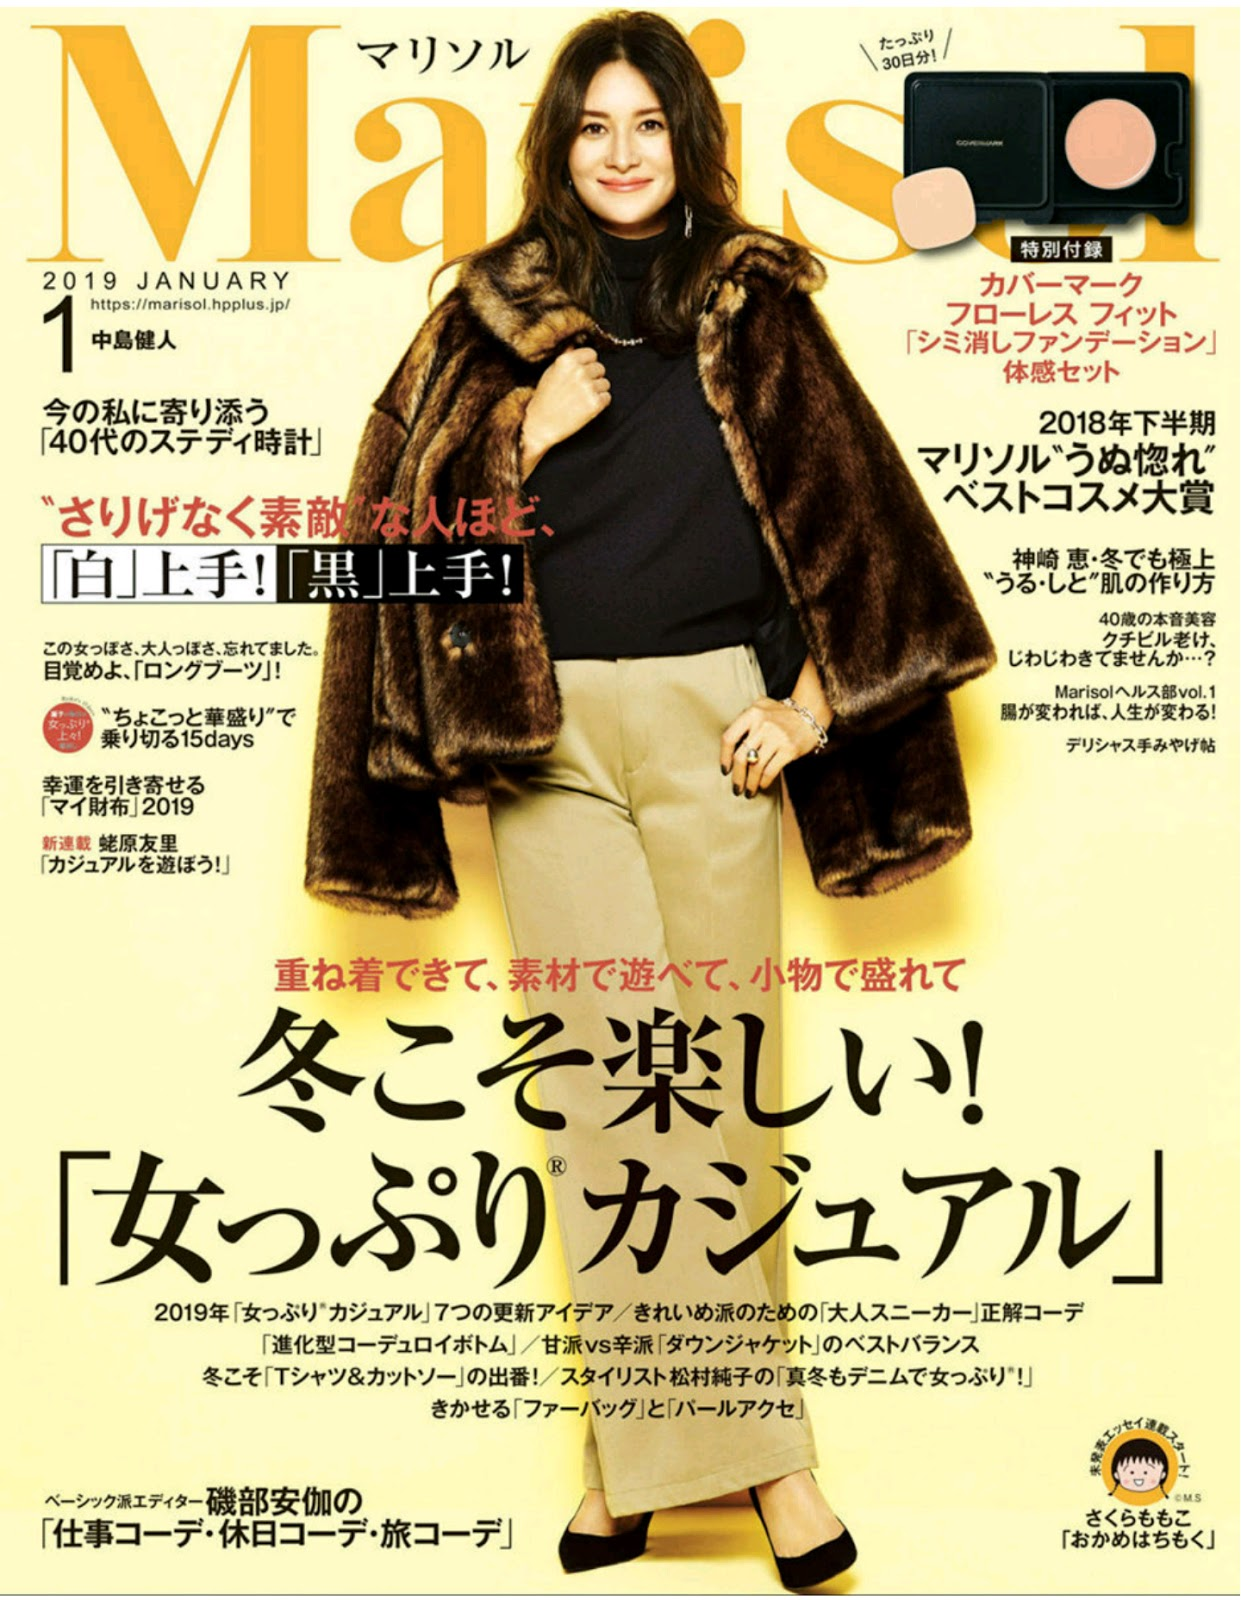 Marisol January 2019 Issue, Free Japanese Fashion Magazine Scans